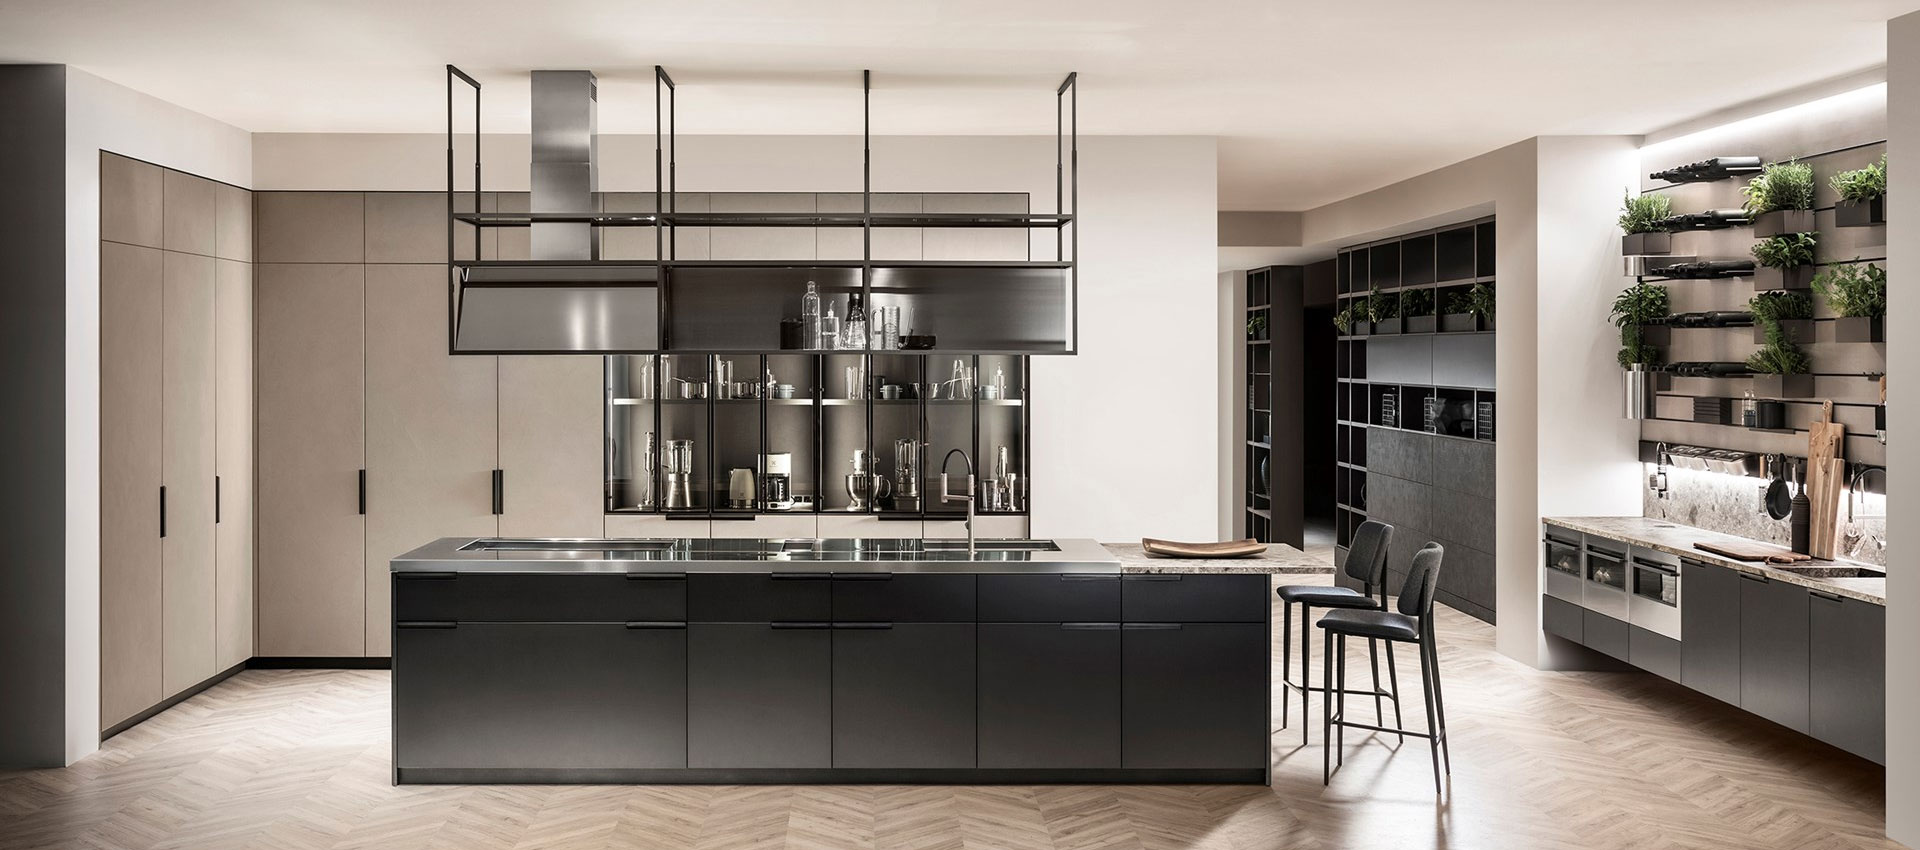 Slider direction 2 for Cucine piano cottura centrale